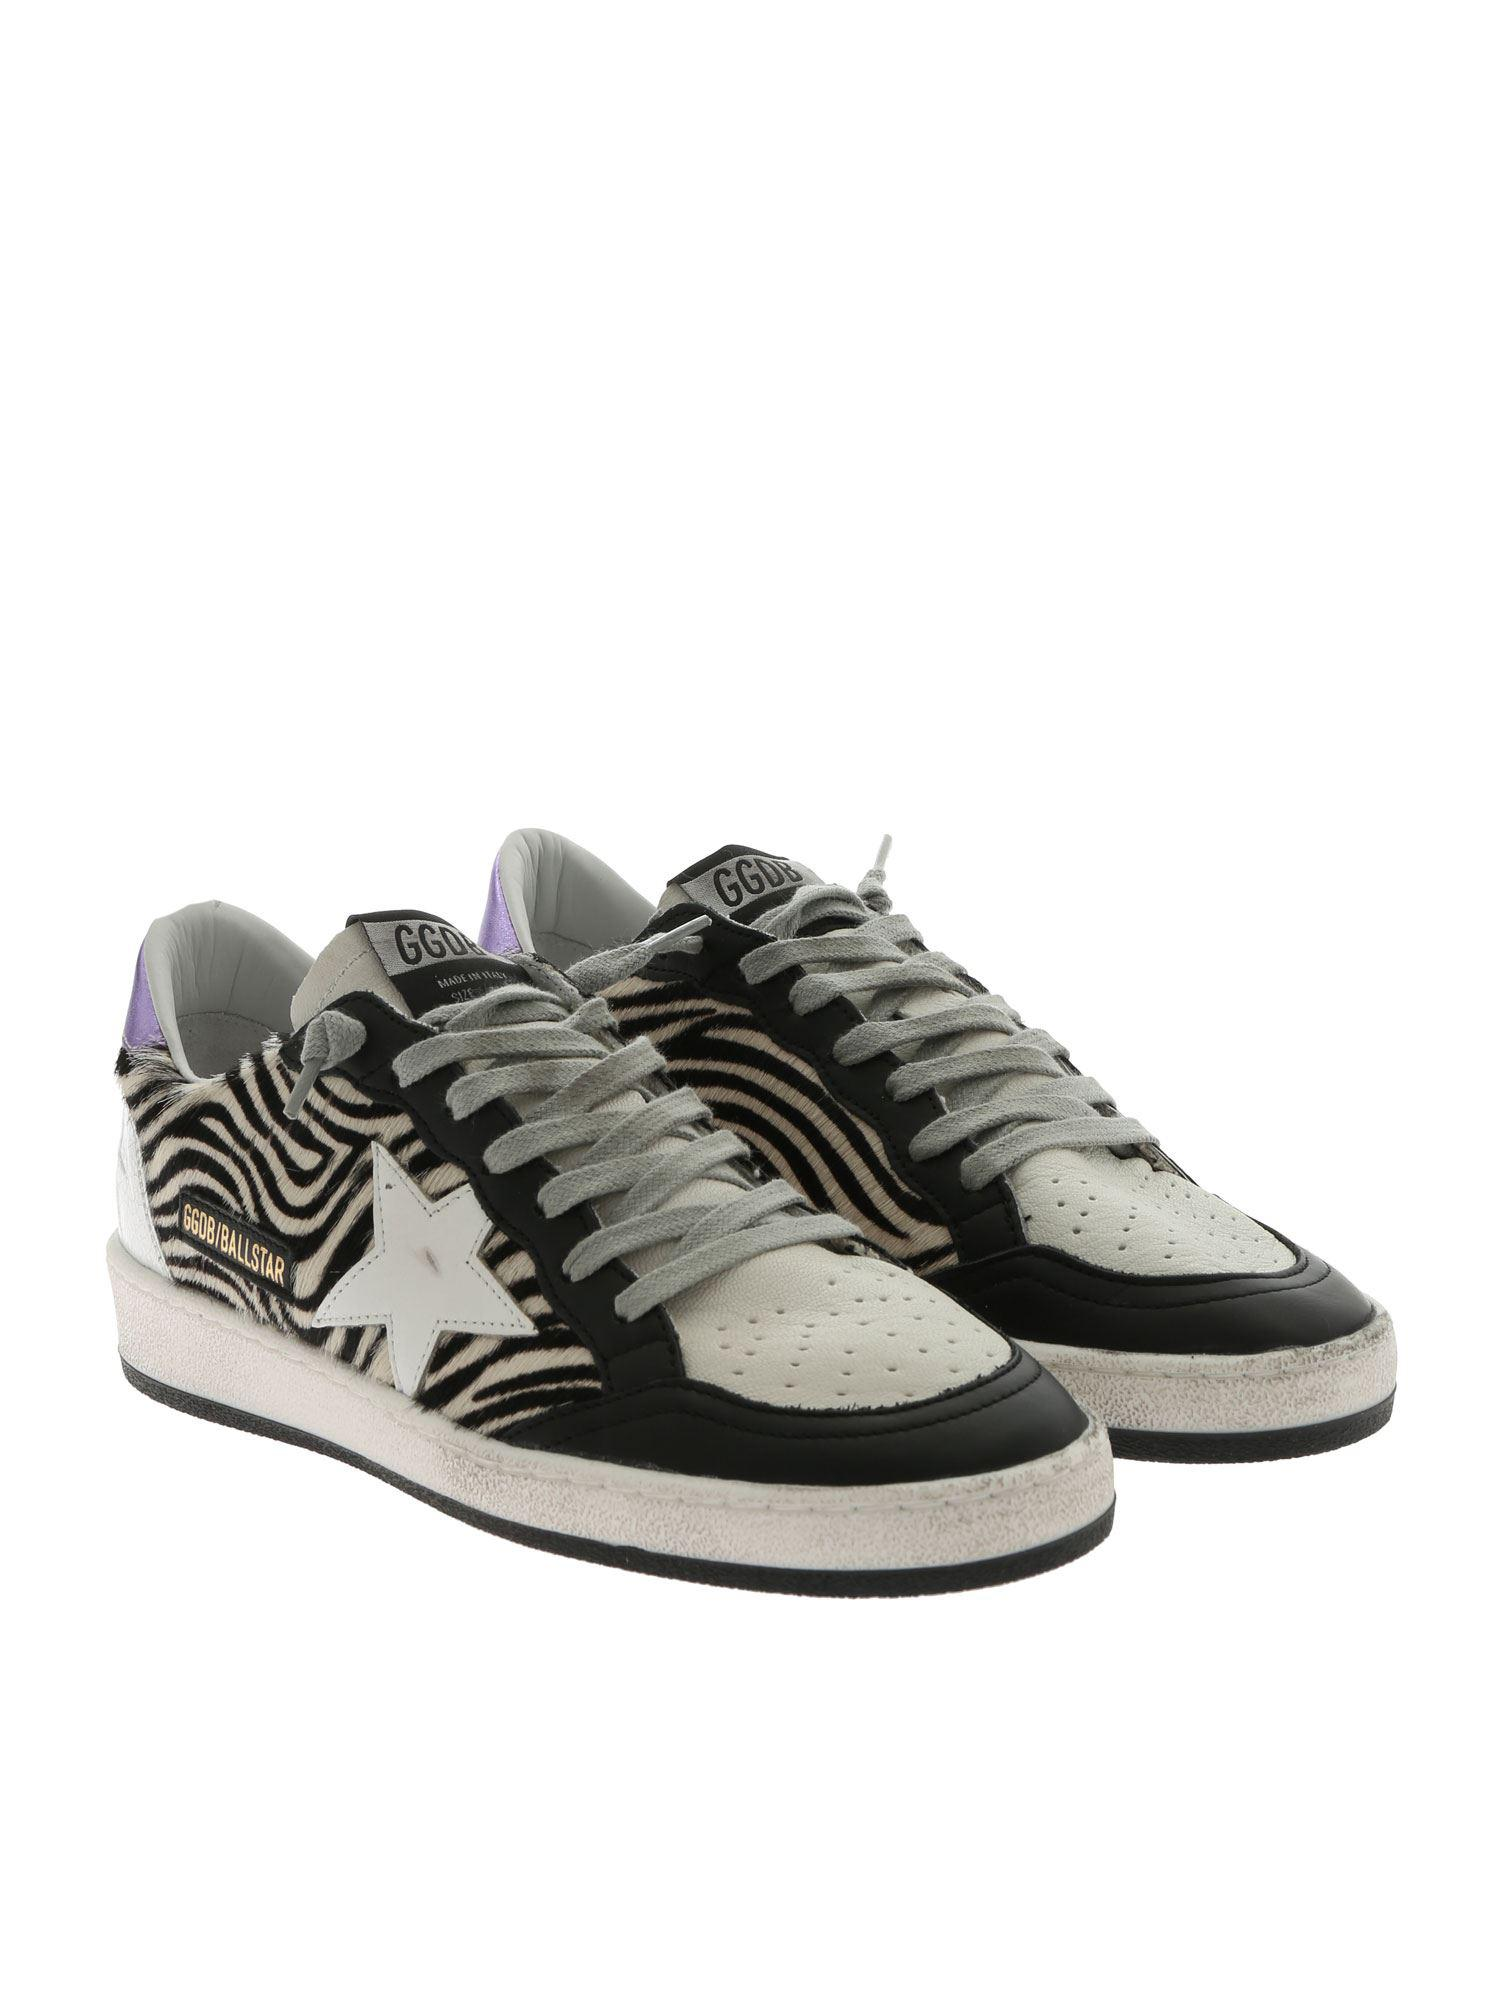 729dd9c4ebc4a Lyst - Golden Goose Deluxe Brand Ball Star White And Black Sneakers in White